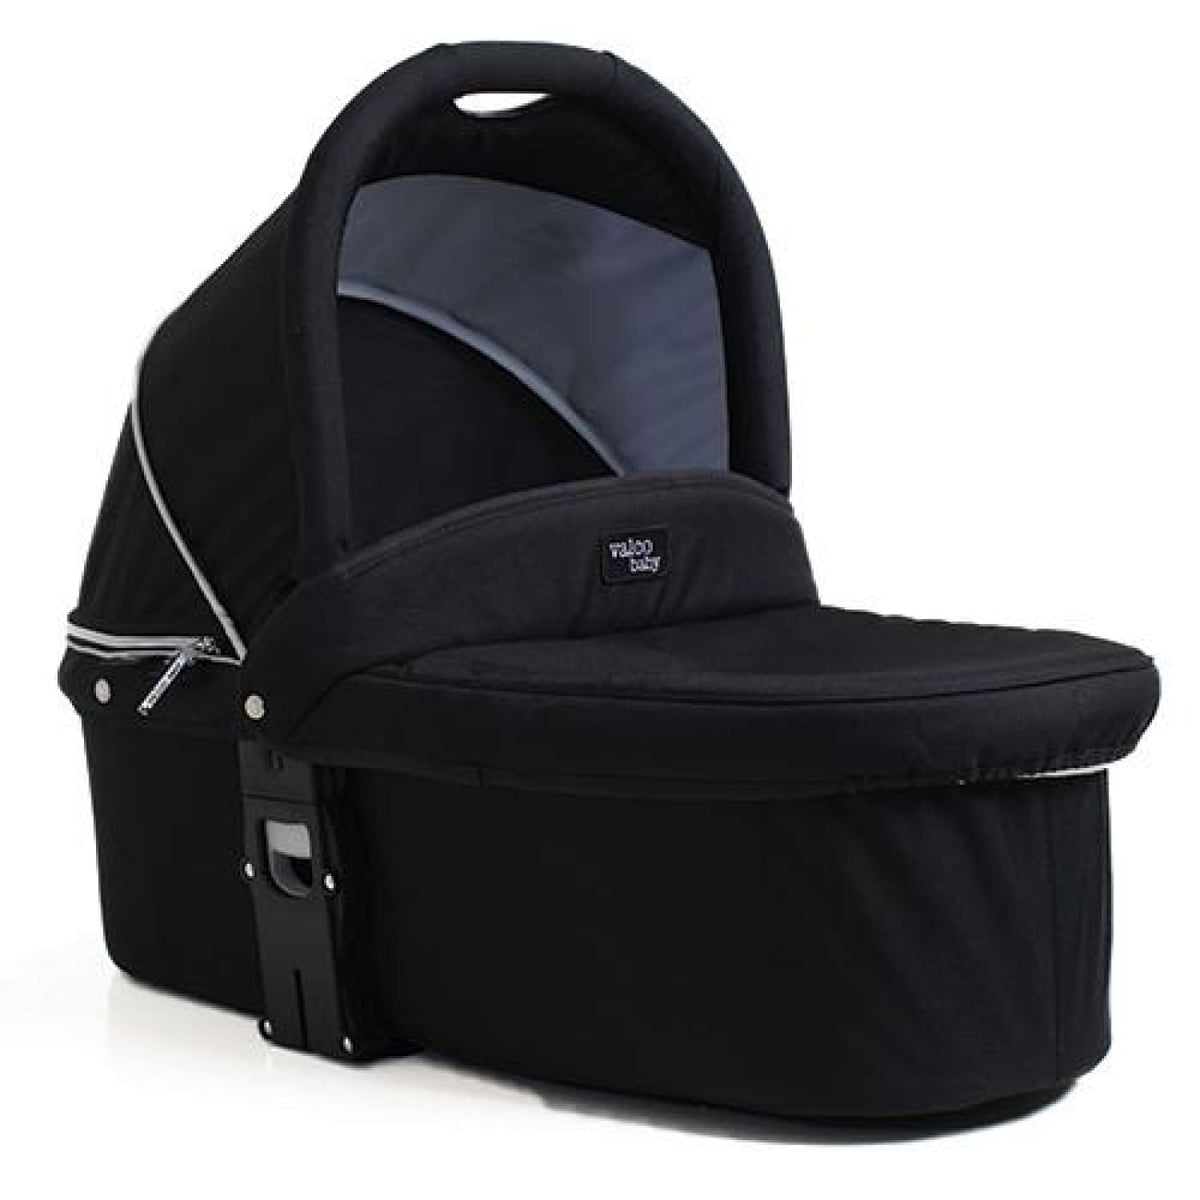 Valco Baby Q Bassinet for Snap Ultra Duo - Coal Black (ETA Unavailable) - PRAMS & STROLLERS - BASS/CARRY COTS/STANDS